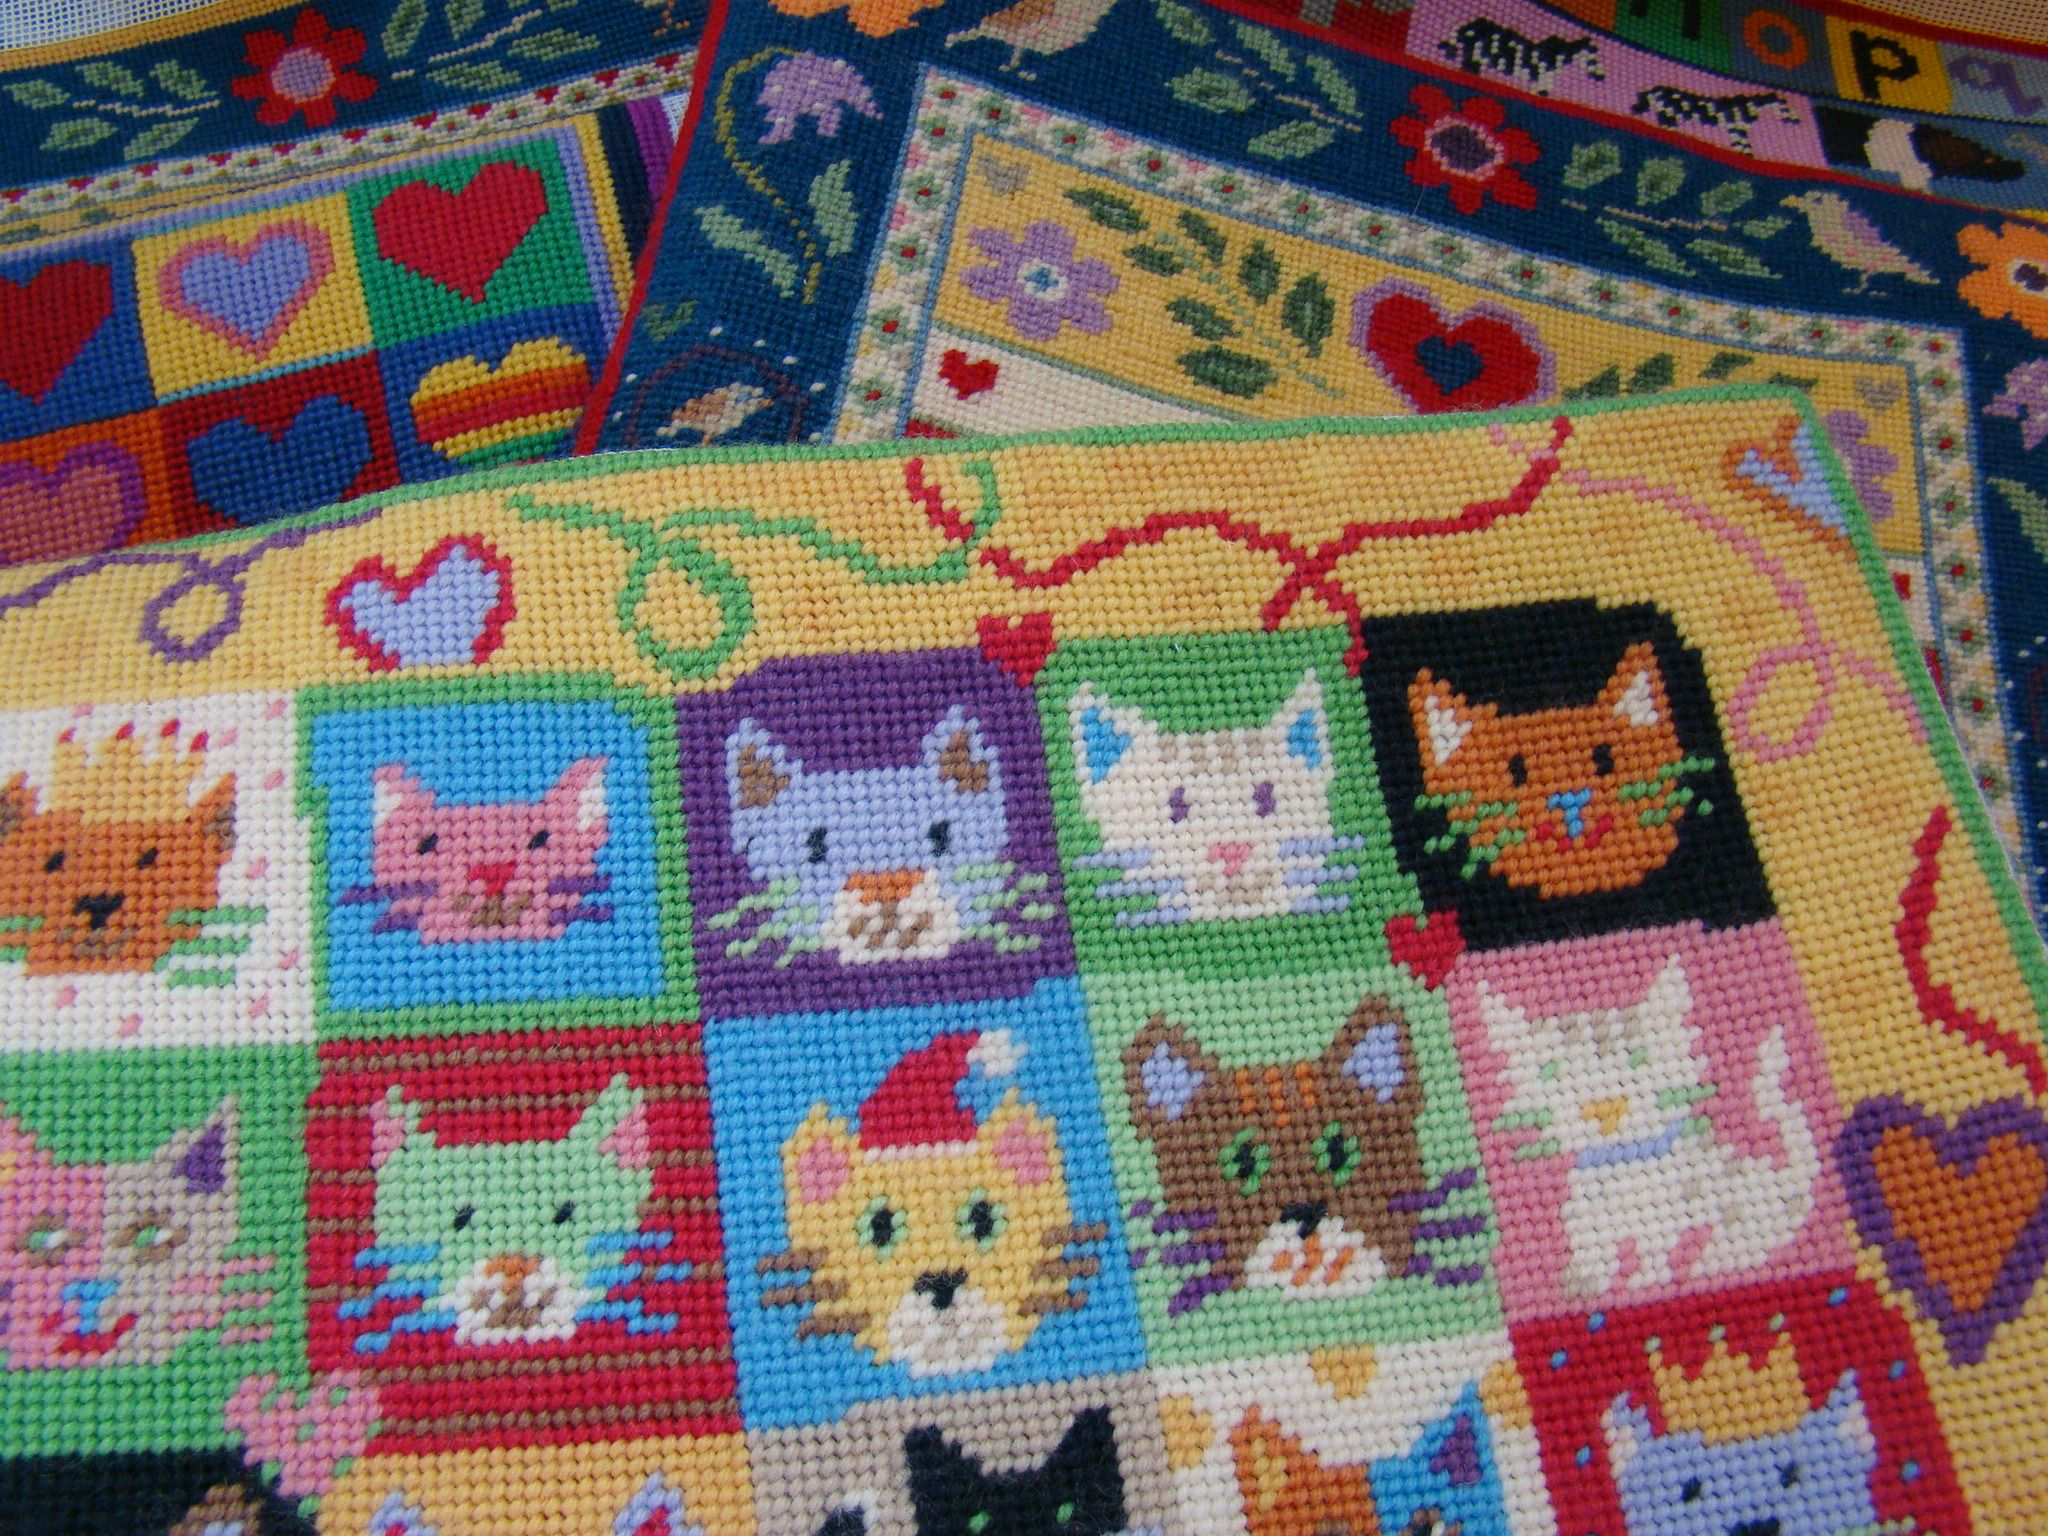 Jolly Red Tapestry Kits Cushions Samplers And Christmas Stockings Tapestry Kits Red Tapestry Cross Stitch